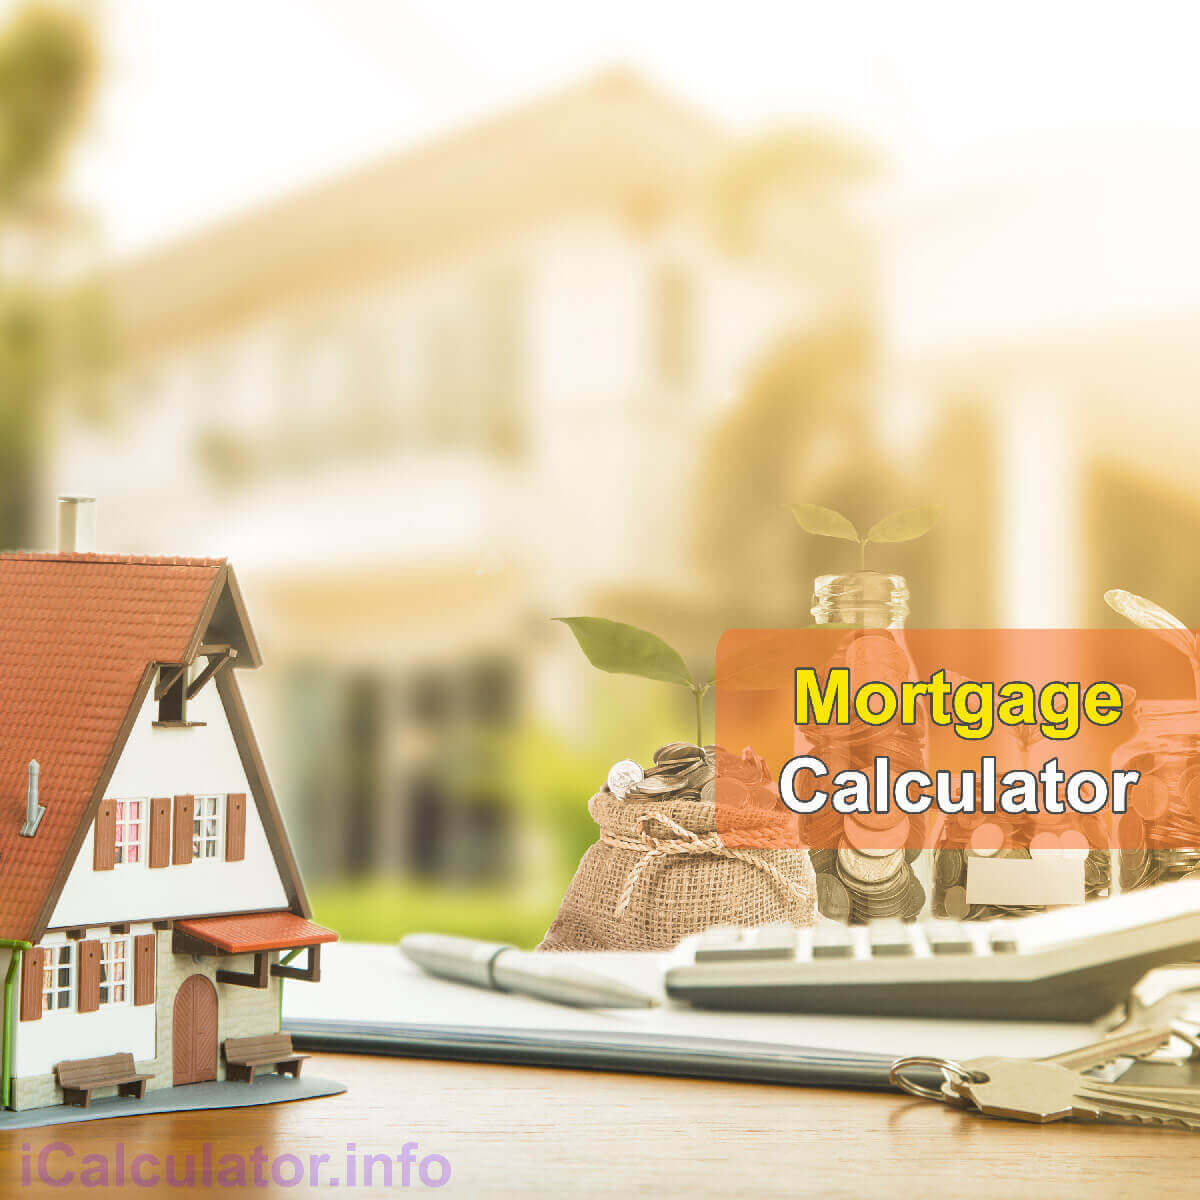 Mortgage Calculator. This image shows a beautiful home for a first time buyer, a notepad and a calculator being used to calculate the monthly repayment amount on a £4,500.00 mortgage with a 3.2% mortgage interest rate. Alternatively, people can calculate their monthly mortgage repayments on £4,500.00 at 3.2% using the mortgage calculator by iCalculator Finance Tax Calculator